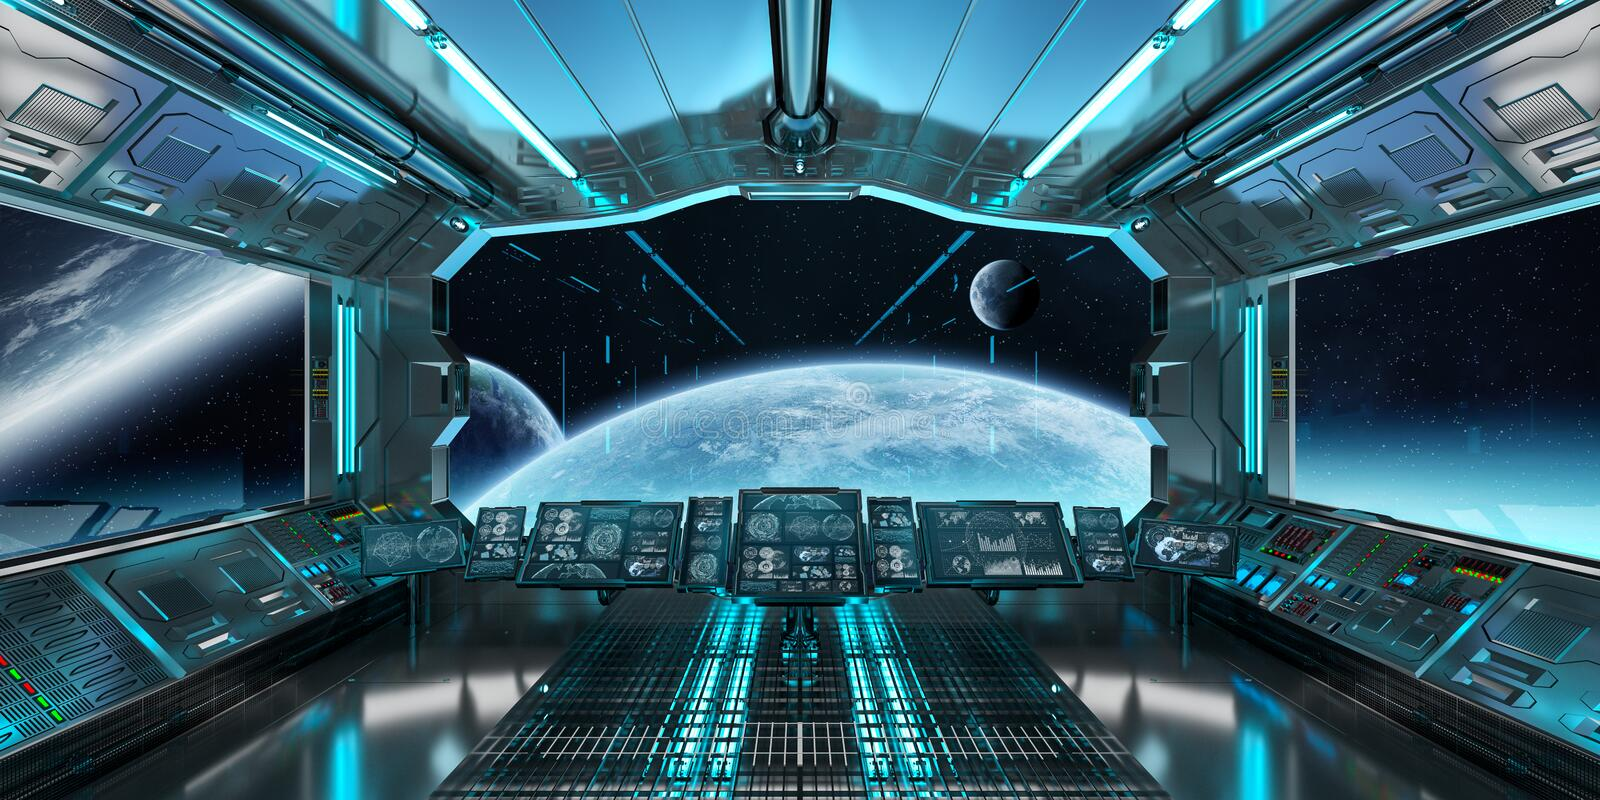 Spaceship Interior With View On Distant Planets System 3d